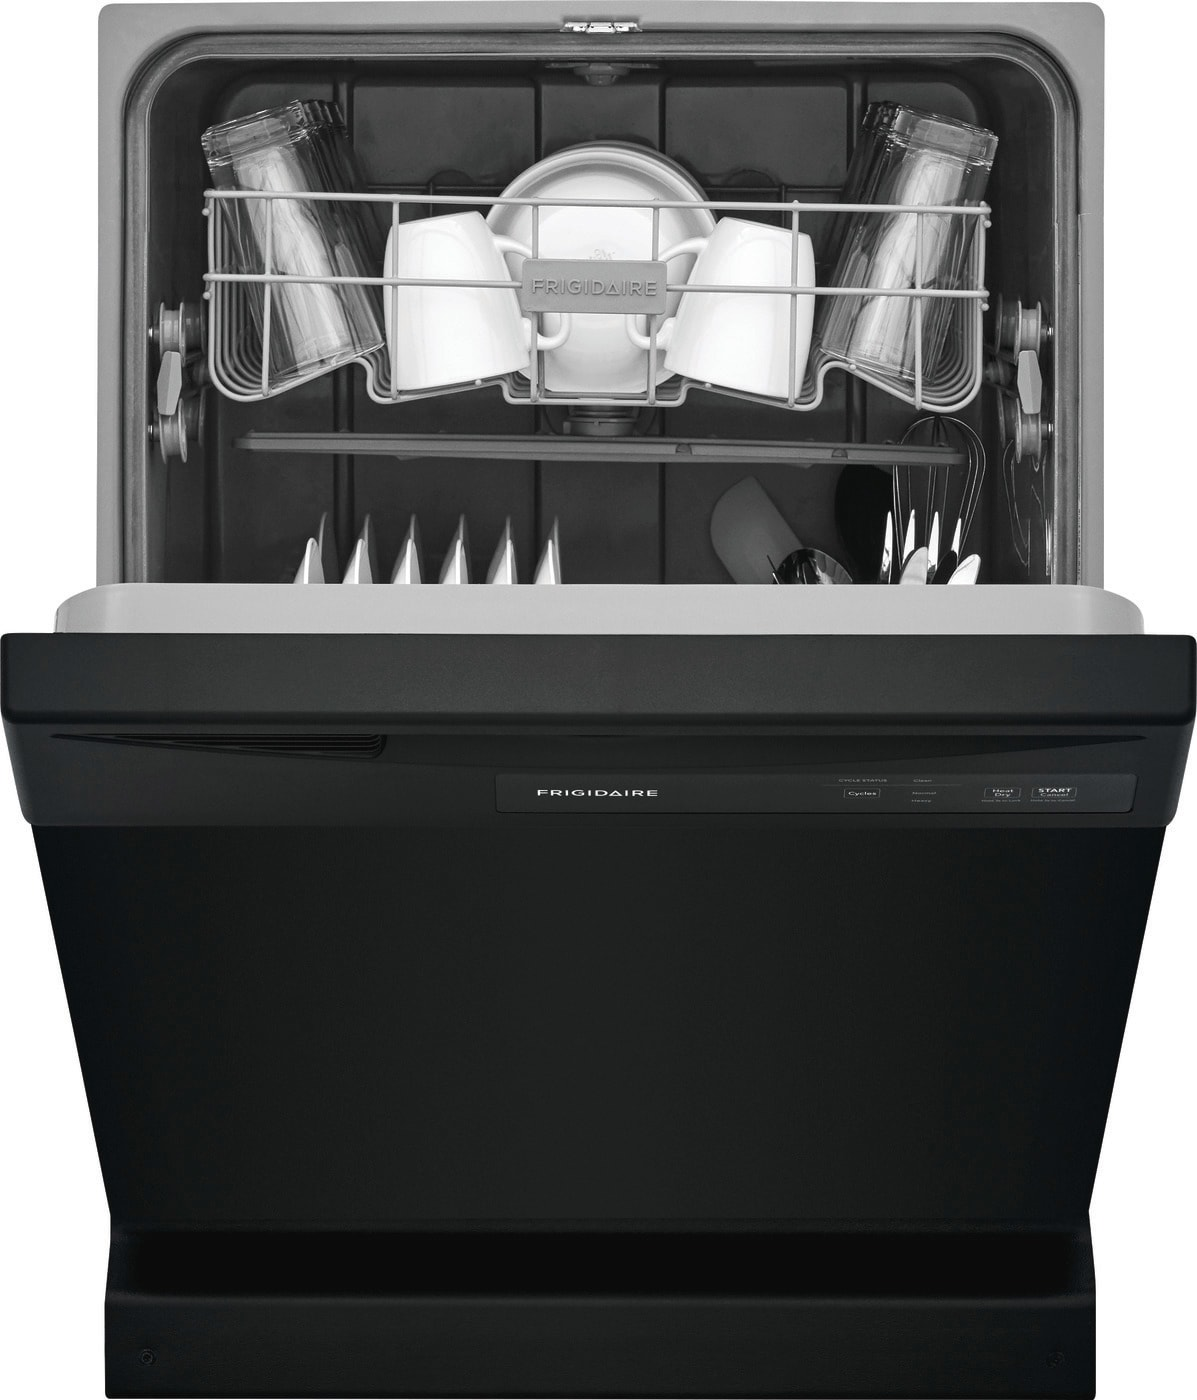 "24"" Built-In Dishwasher Black FDPC4221AB"